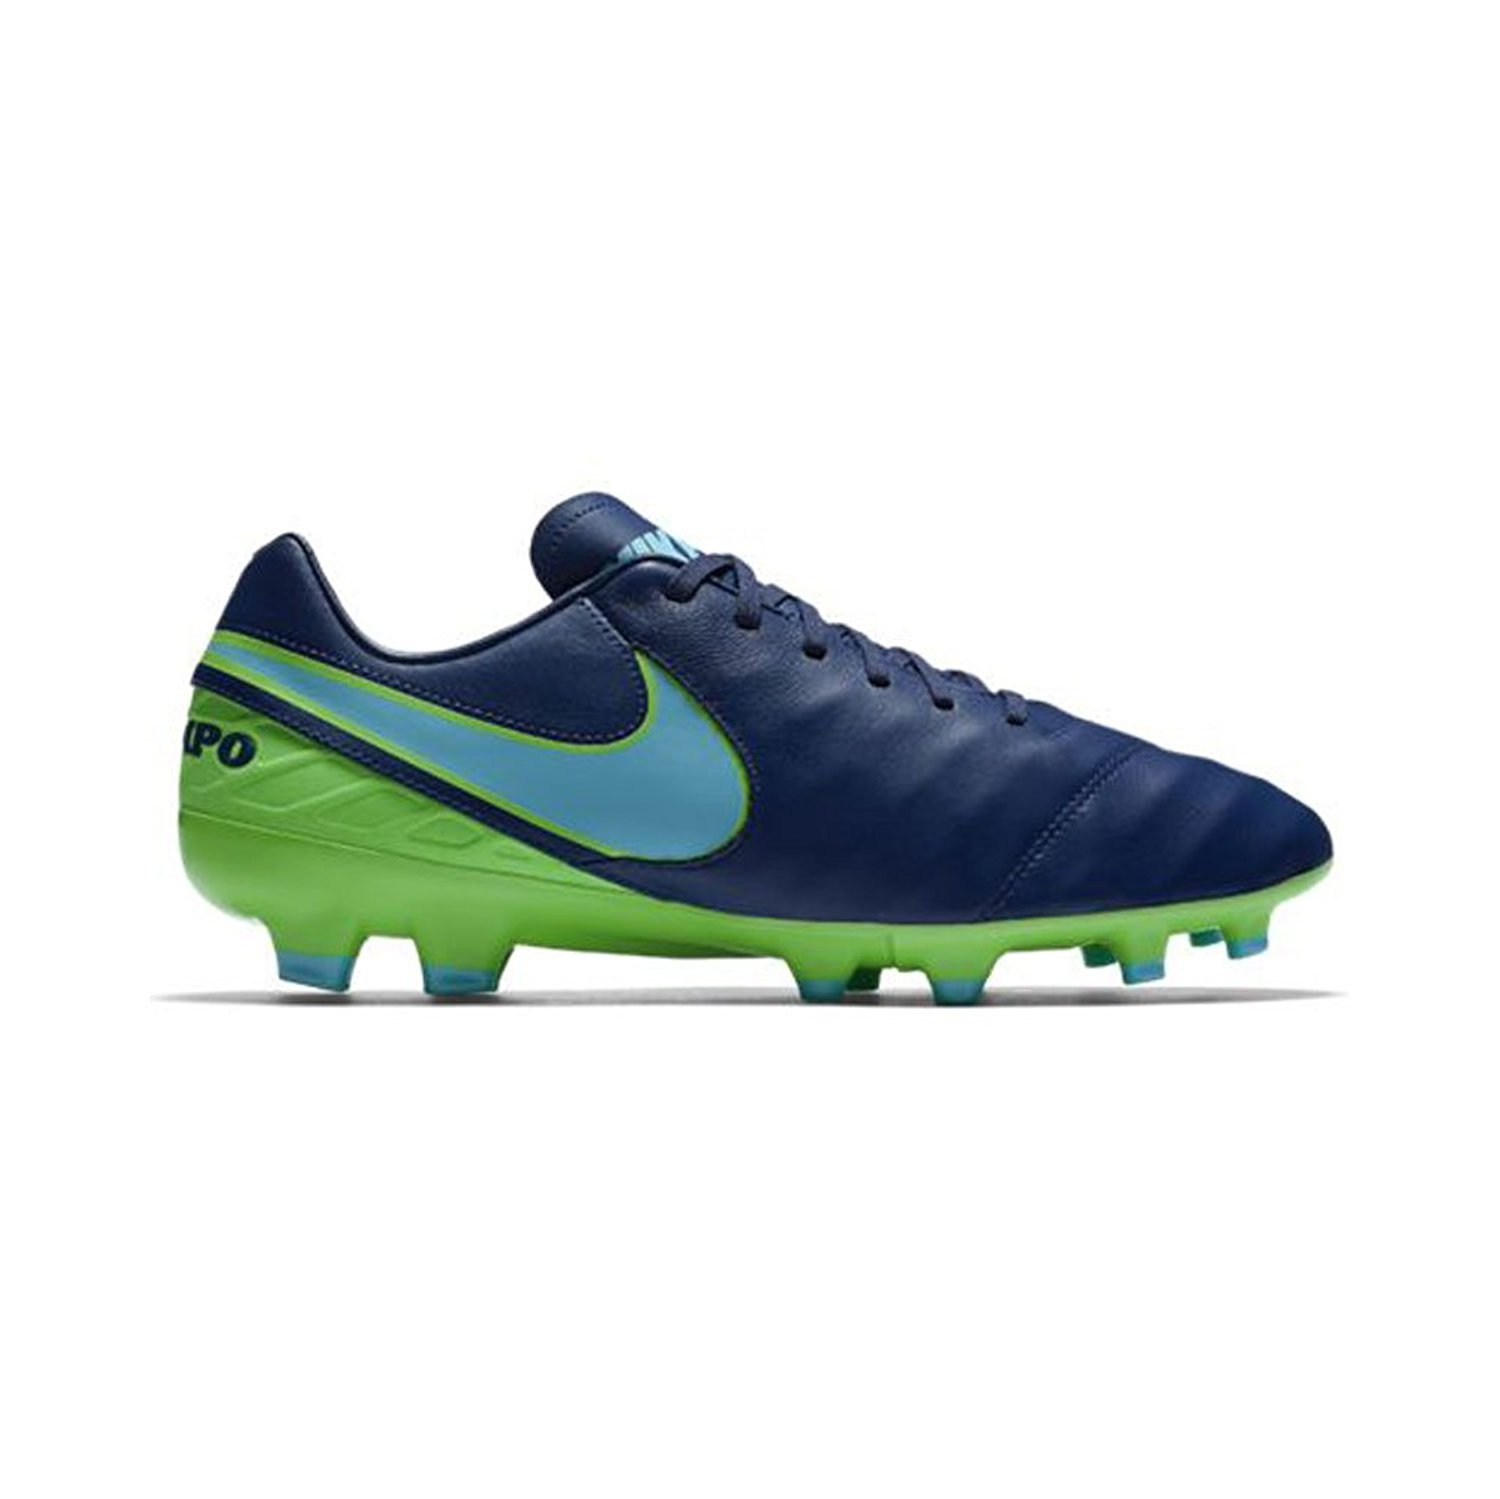 huge selection of 59d09 ba7ce Bingua.com - Amazon.com | Nike Tiempo Mystic V Firm Ground ...